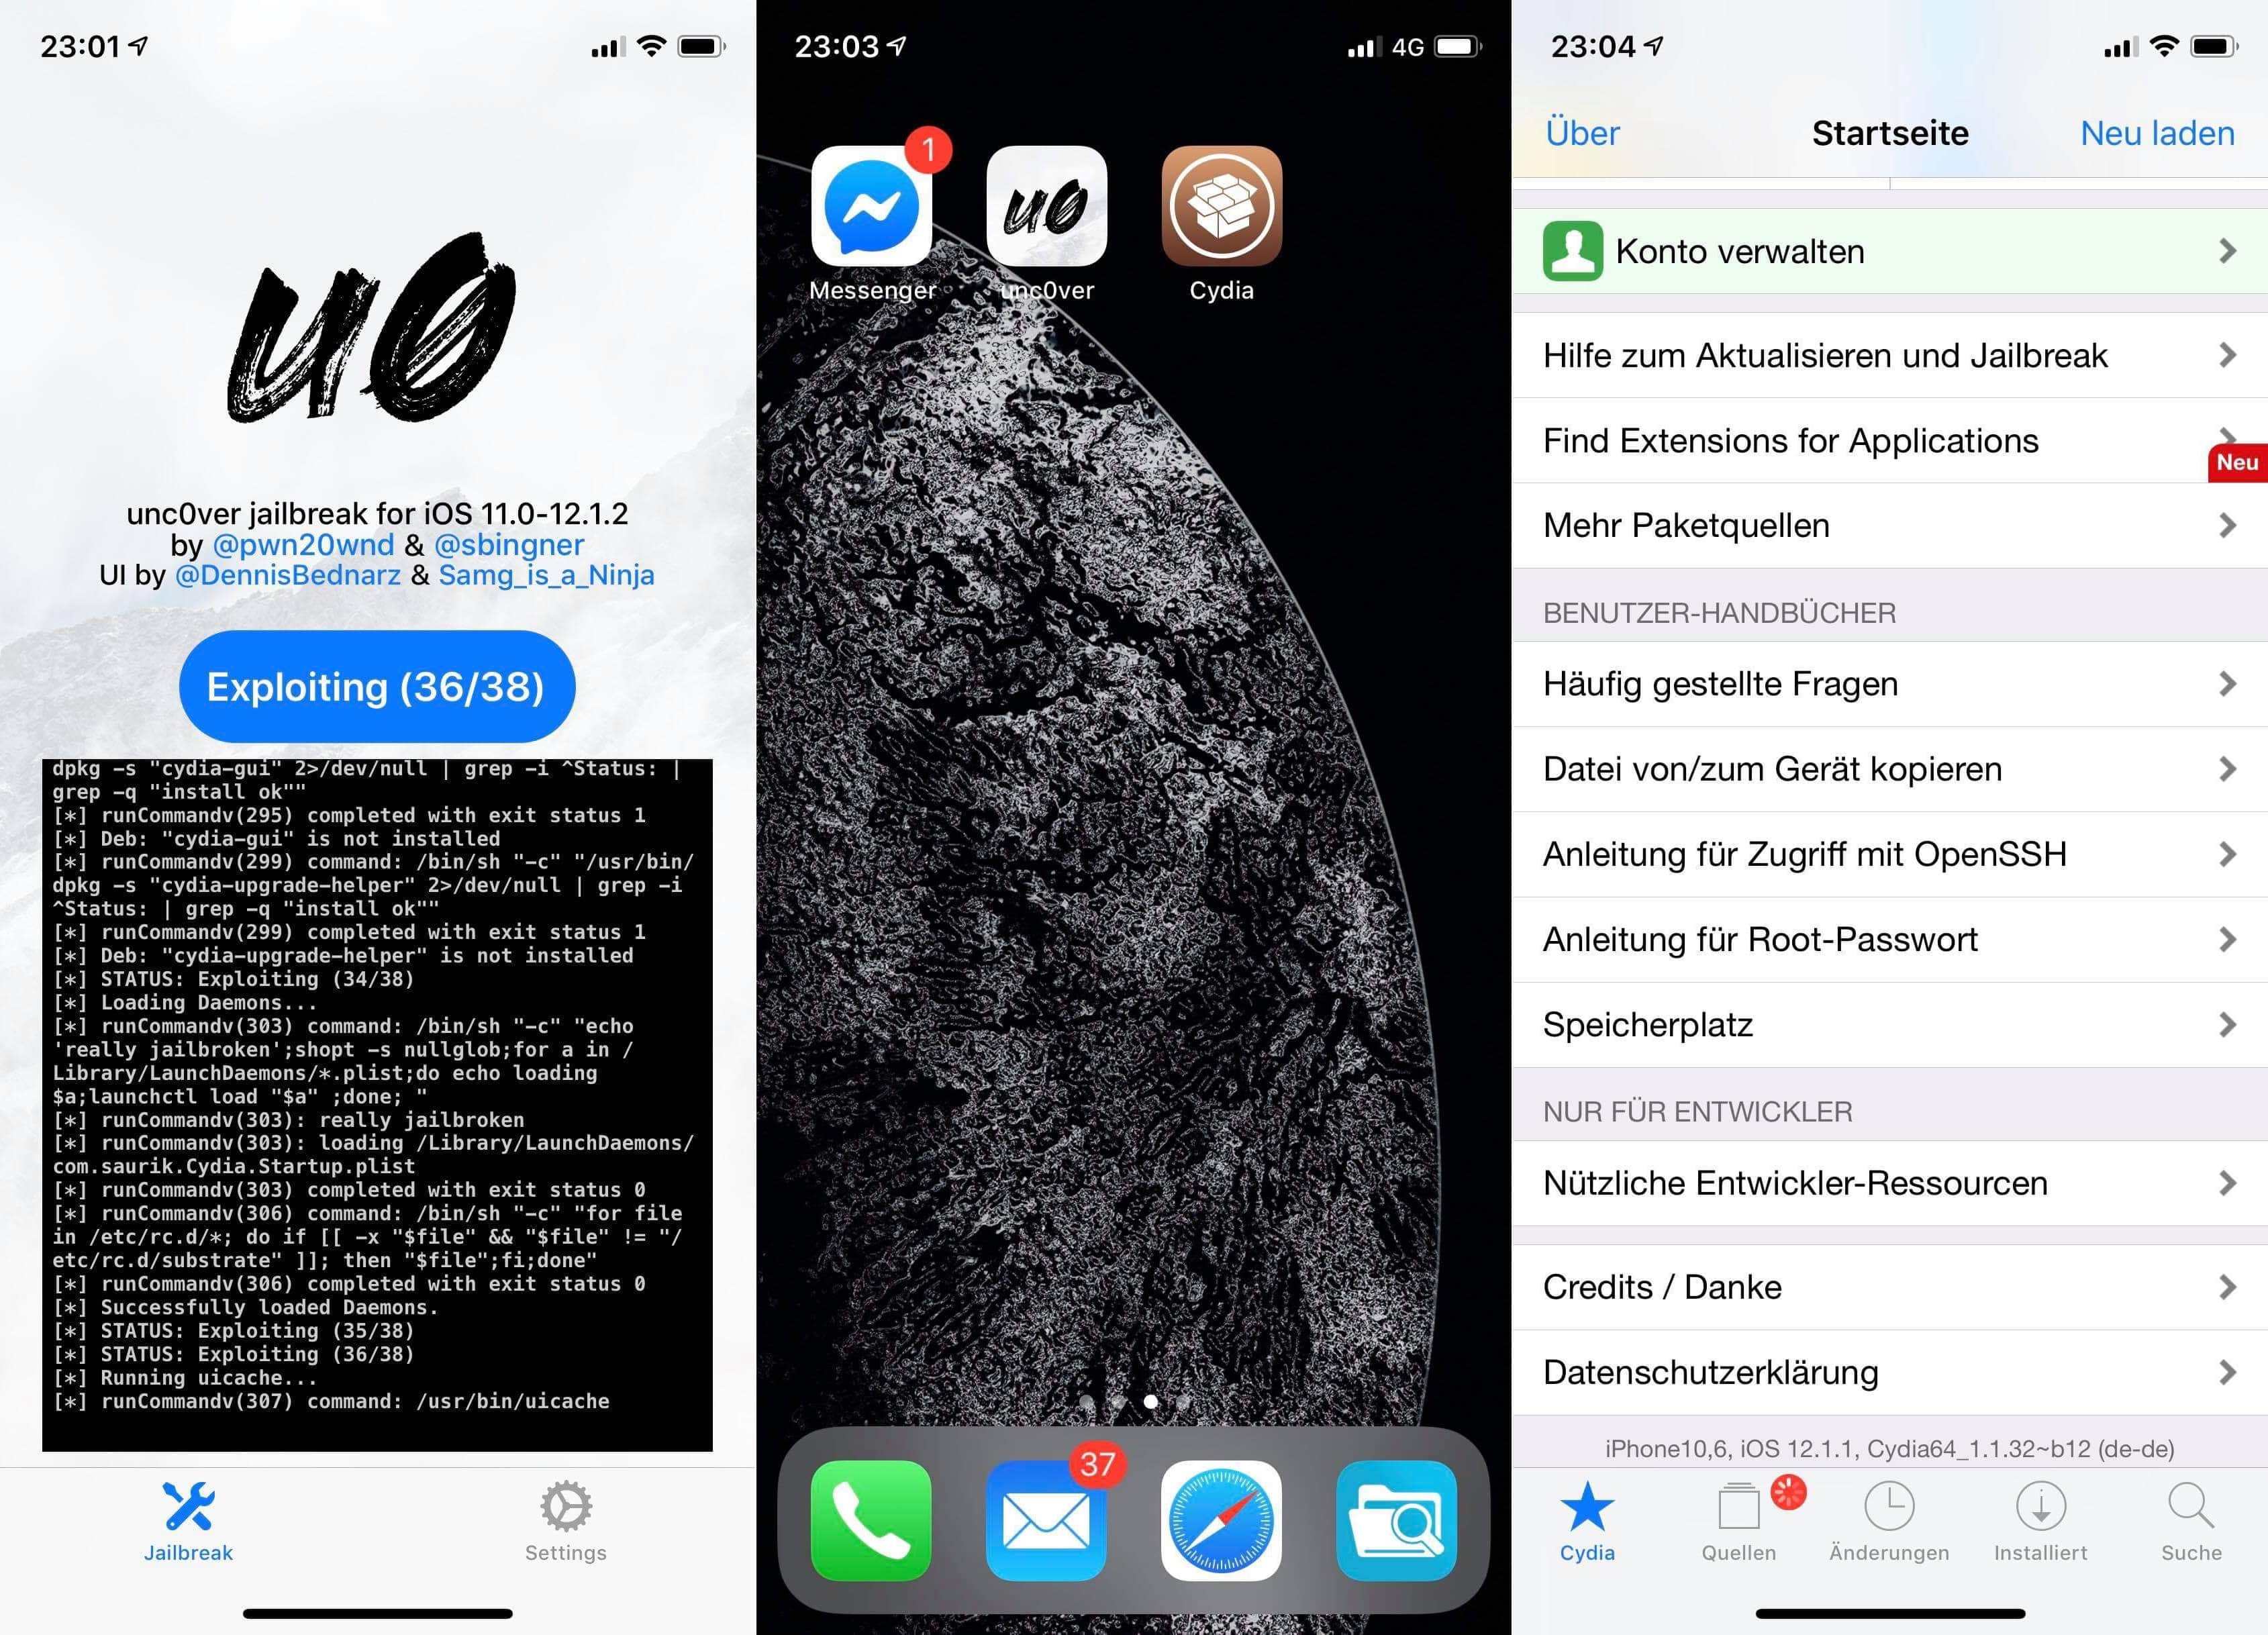 iOS 12 Jailbreak with unc0ver v3.0.0 - Tutorial, Hack4Life, Fabian Geissler, step-by-step, iPhone XS, iPhone XS Max, A12, Status, pwn20wnd, Cydia, Tutorial, Help, Support